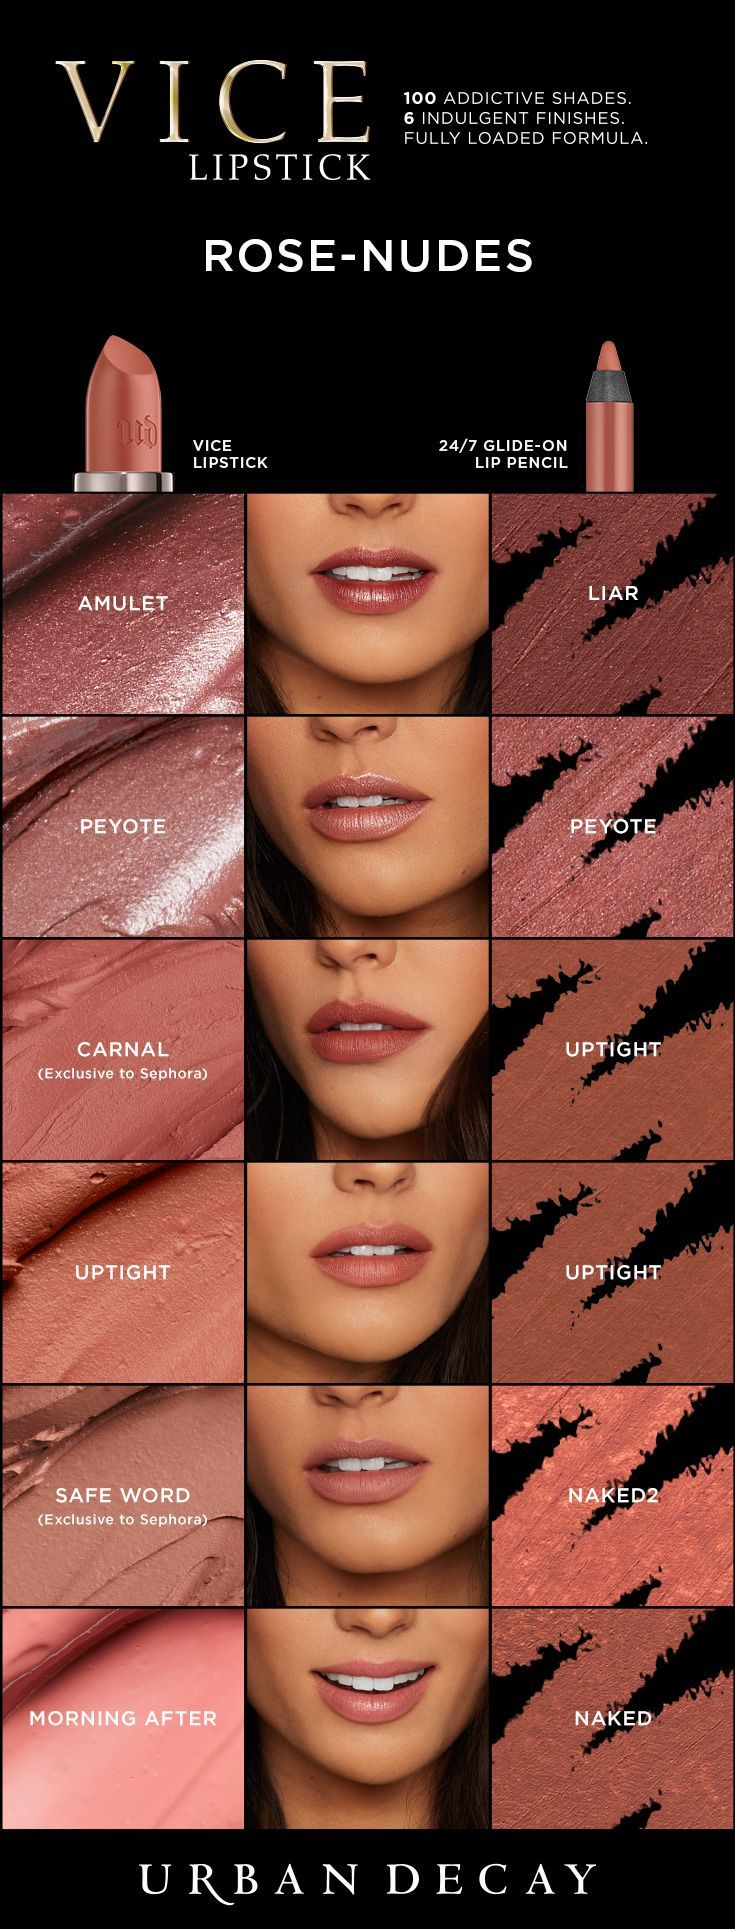 Find the perfect rose nude to match any look! From matte to metallized, pick it up in your favorite finish now at http://urbandecay.com.